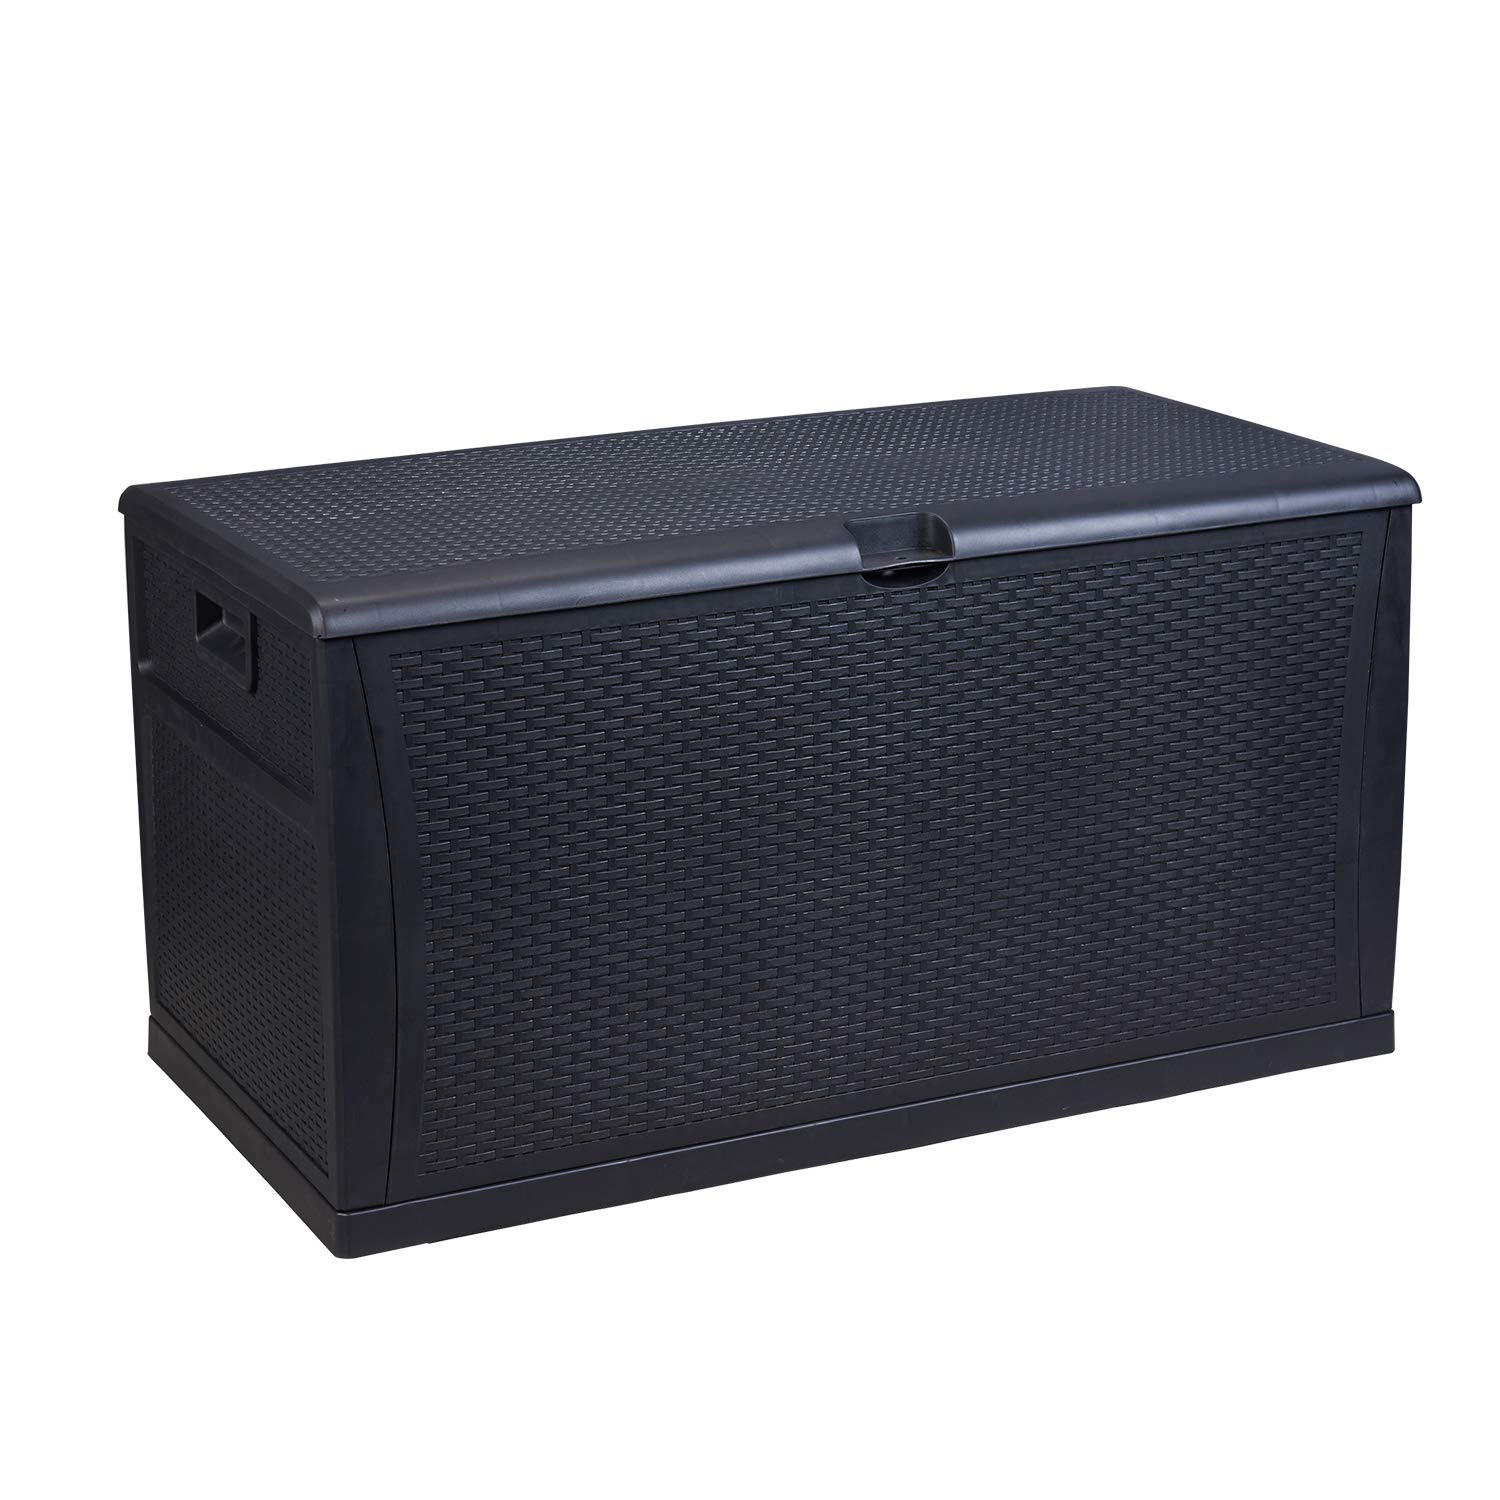 Ainfox Patio Storage Deck Box, Outdoor Storage Plastic Bench Box - All Weather Resin Wicker Deck Box Storage Container Bench Seat Black